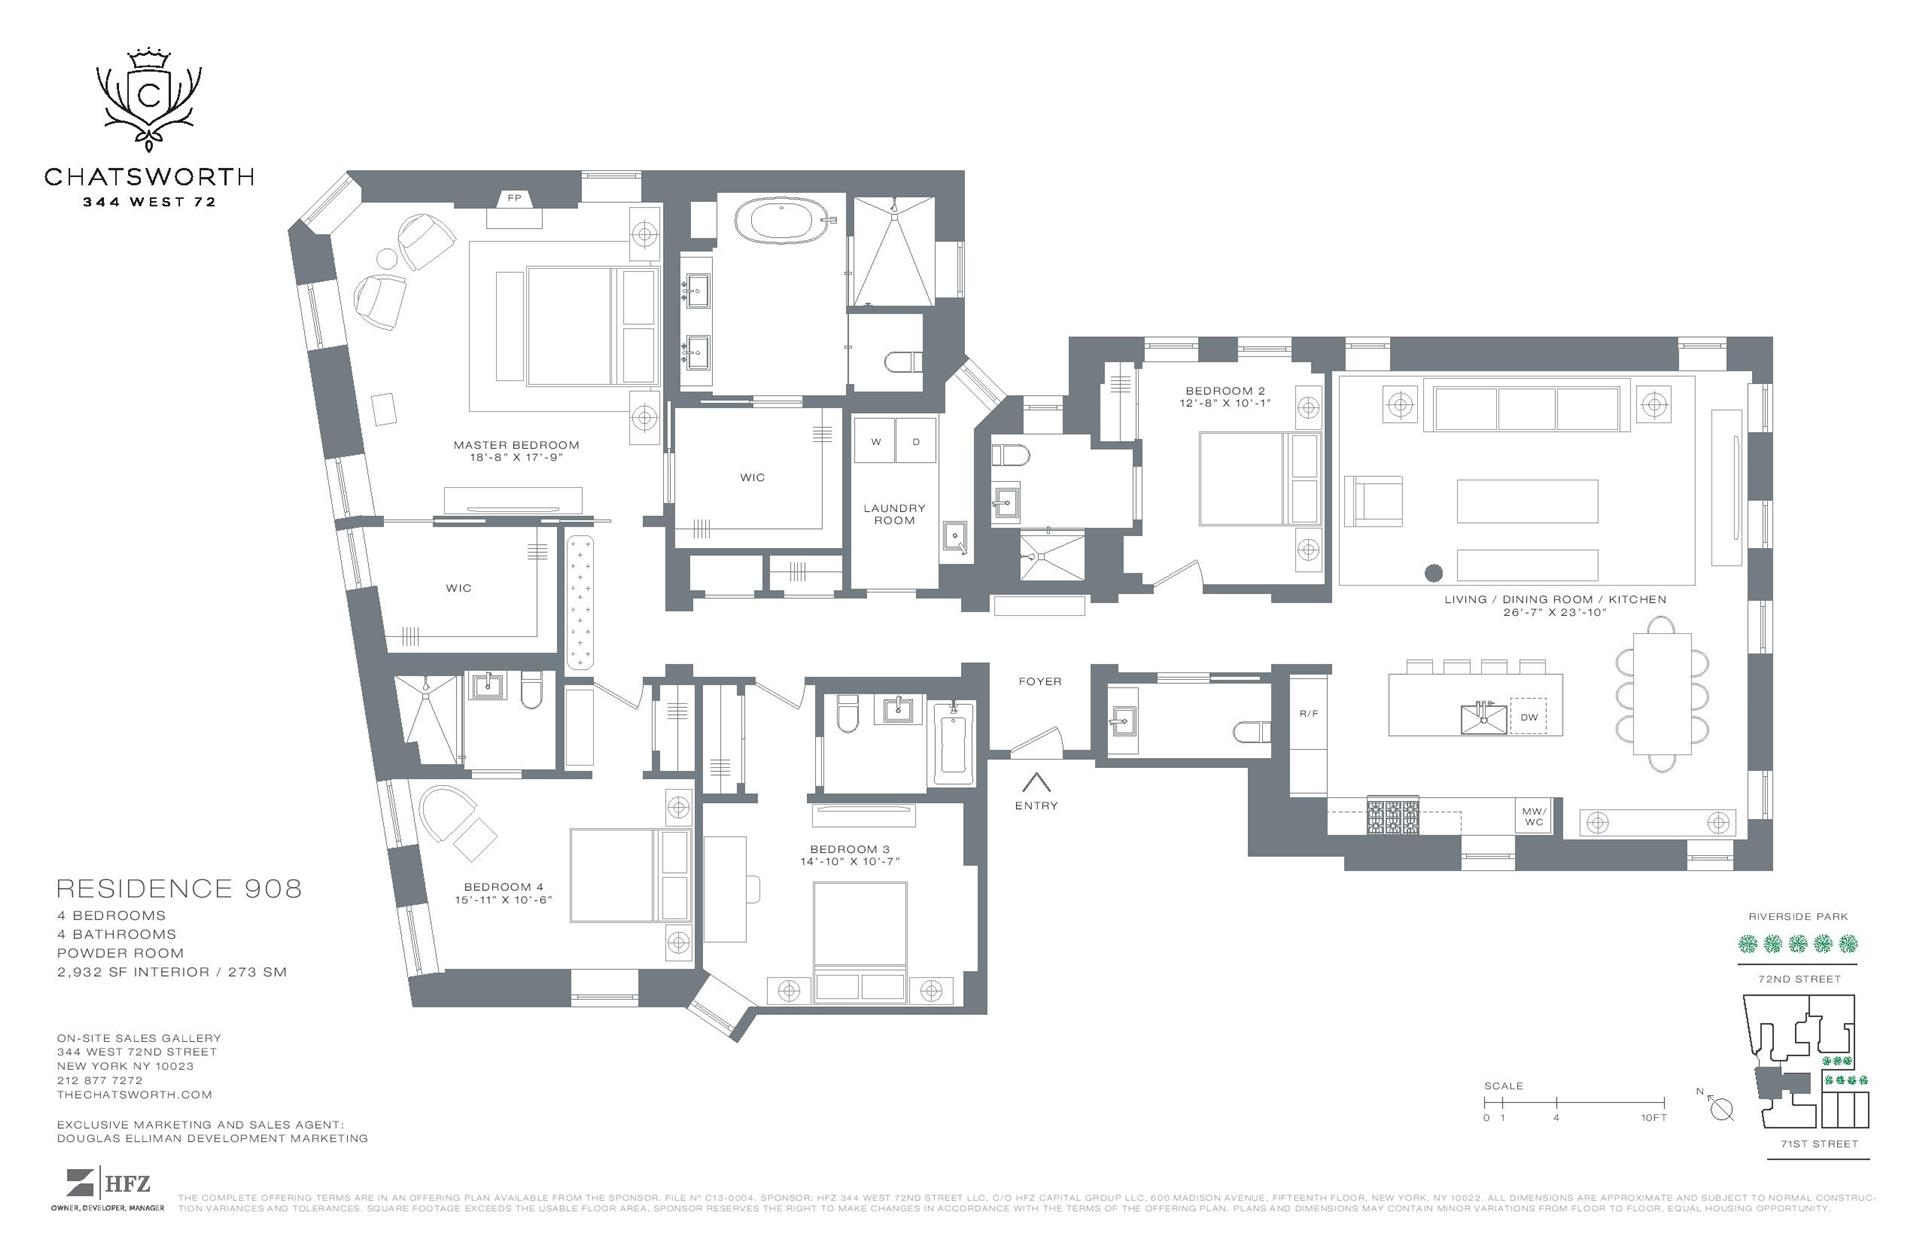 Floor plan of The Chatsworth, 344 West 72nd St, 908 - Upper West Side, New York